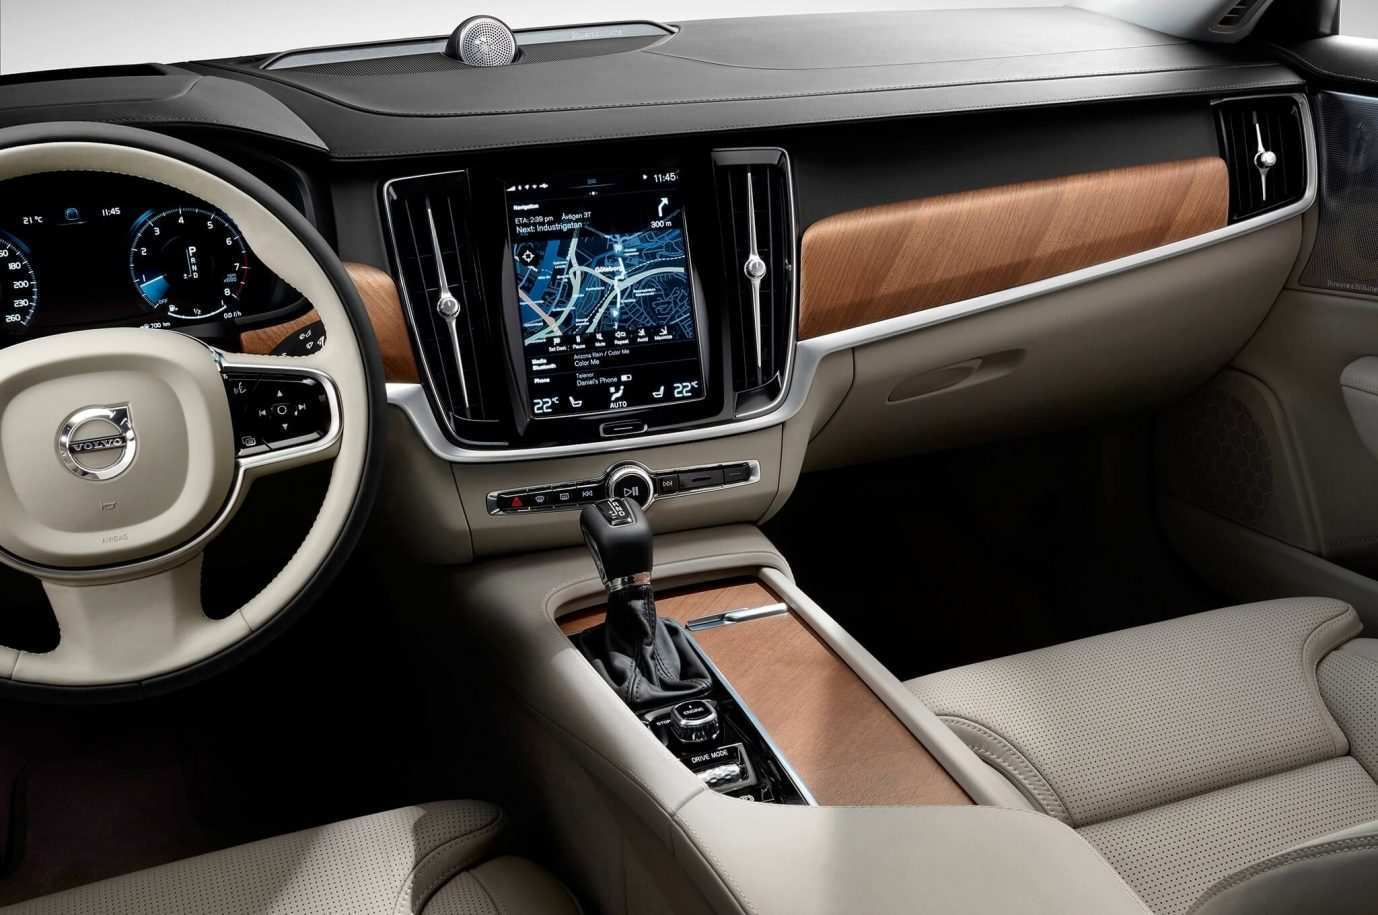 97 Gallery of New Xc90 Volvo 2019 Exterior Images for New Xc90 Volvo 2019 Exterior